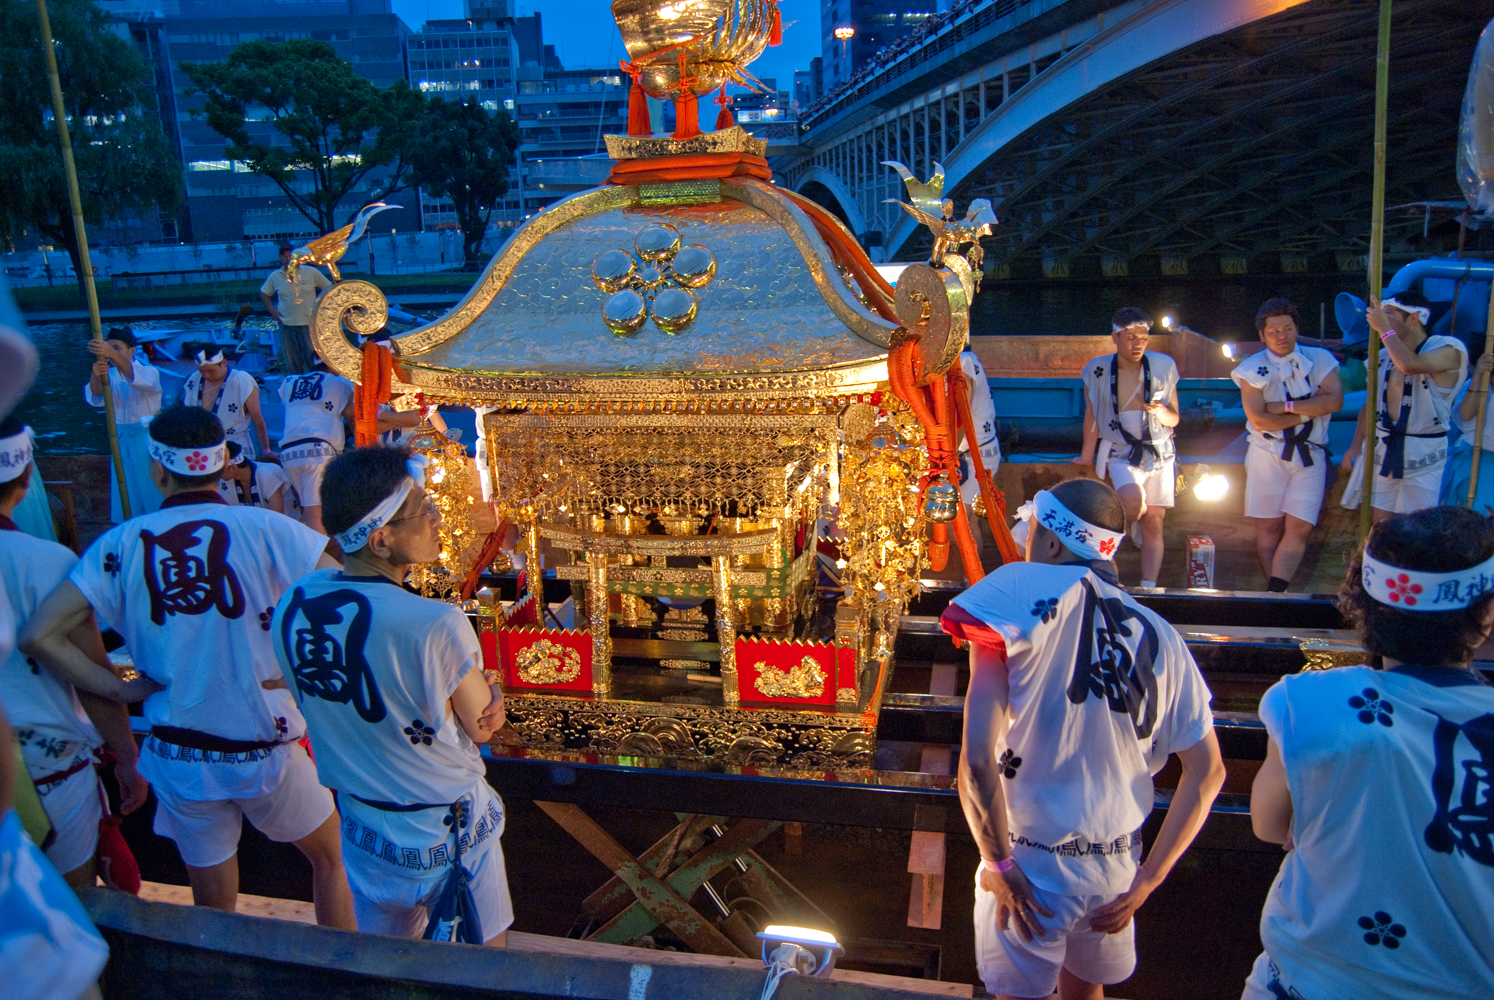 Loading a shrine onto a boat at night